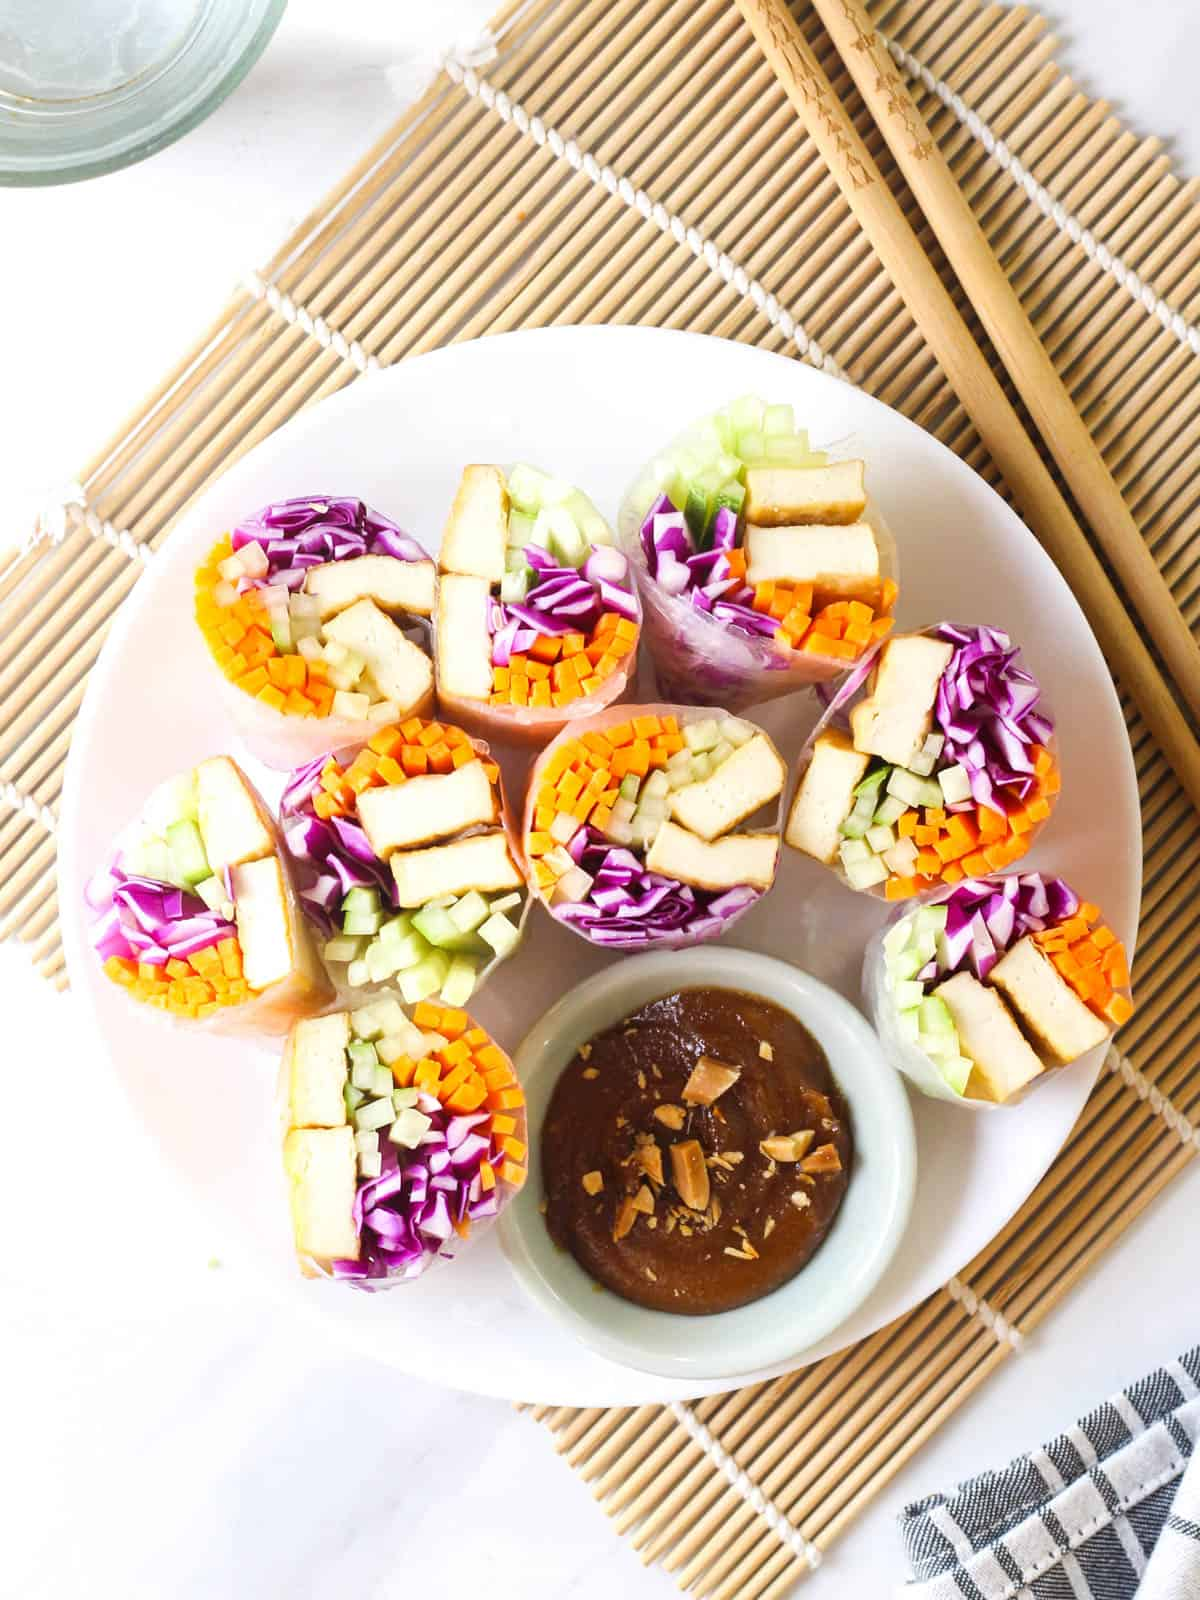 Rice paper rolls sliced into halves served on a white plate with a side of peanut sauce.